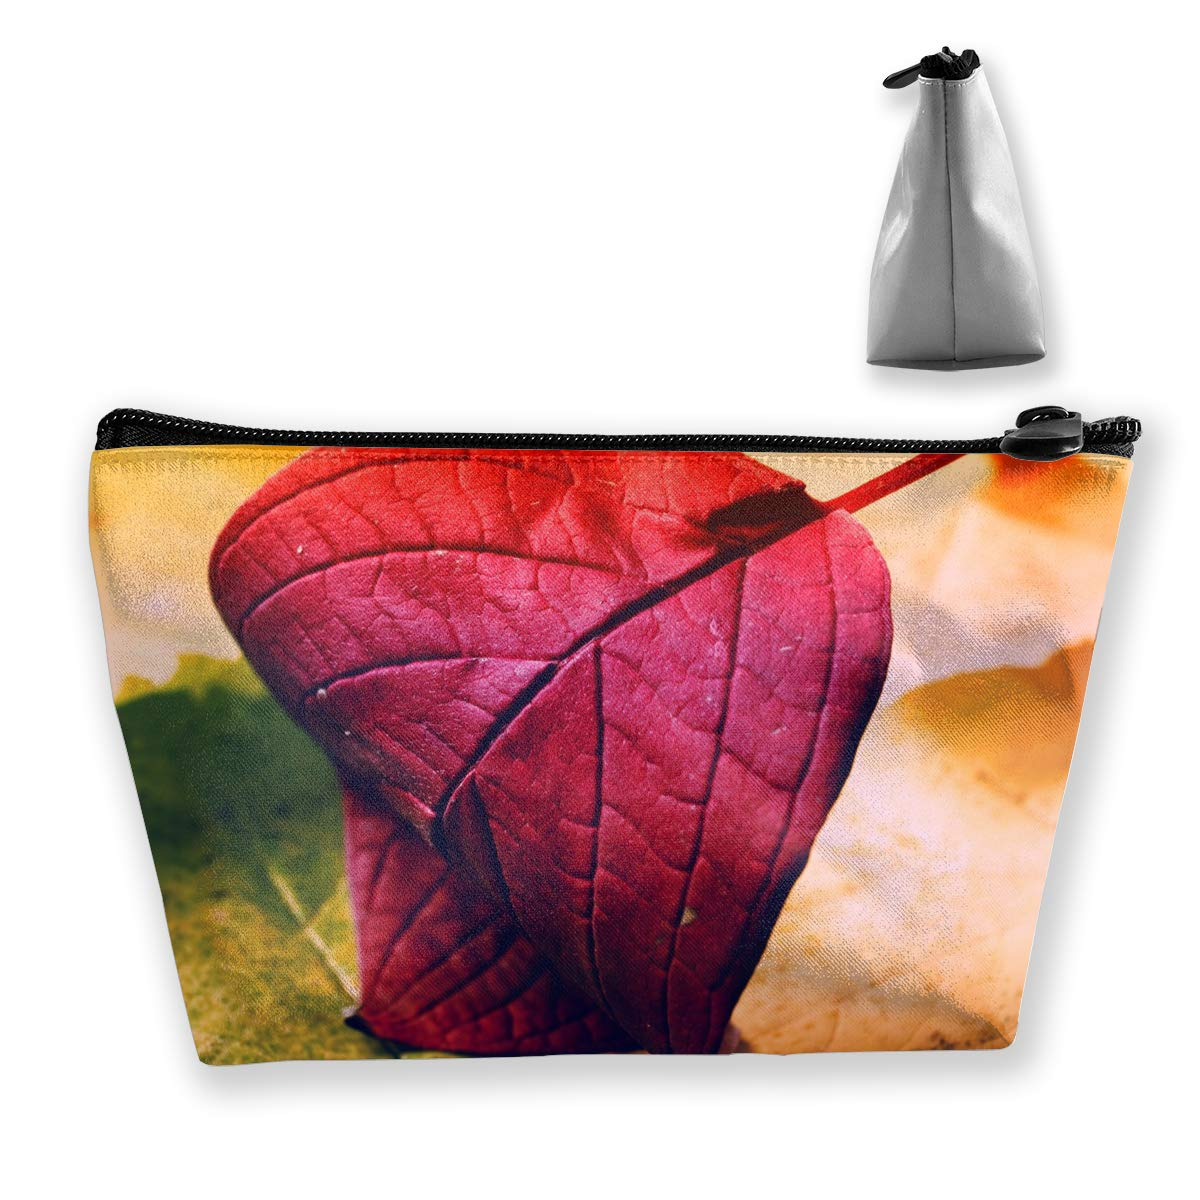 Trapezoid Toiletry Pouch Portable Travel Bag Red Leaf Pen Organizer